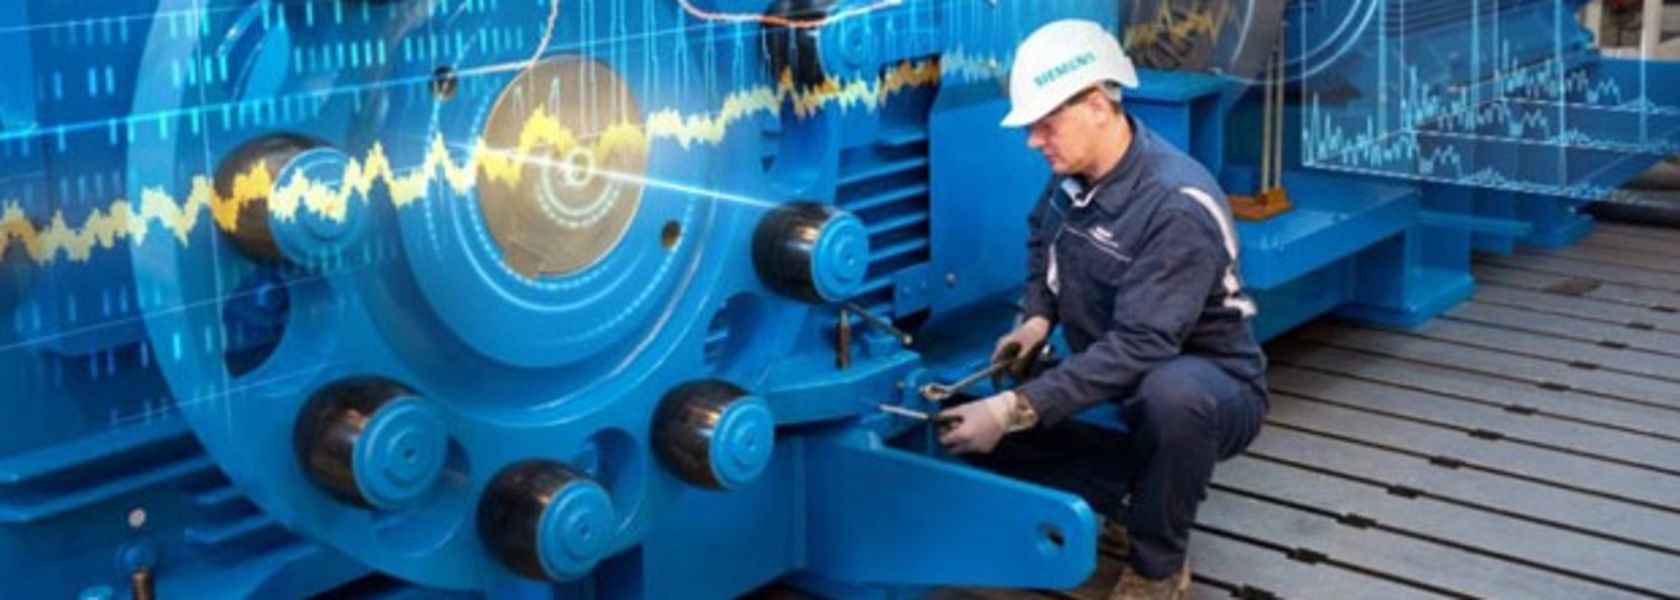 Siemens introduces gearbox test facility